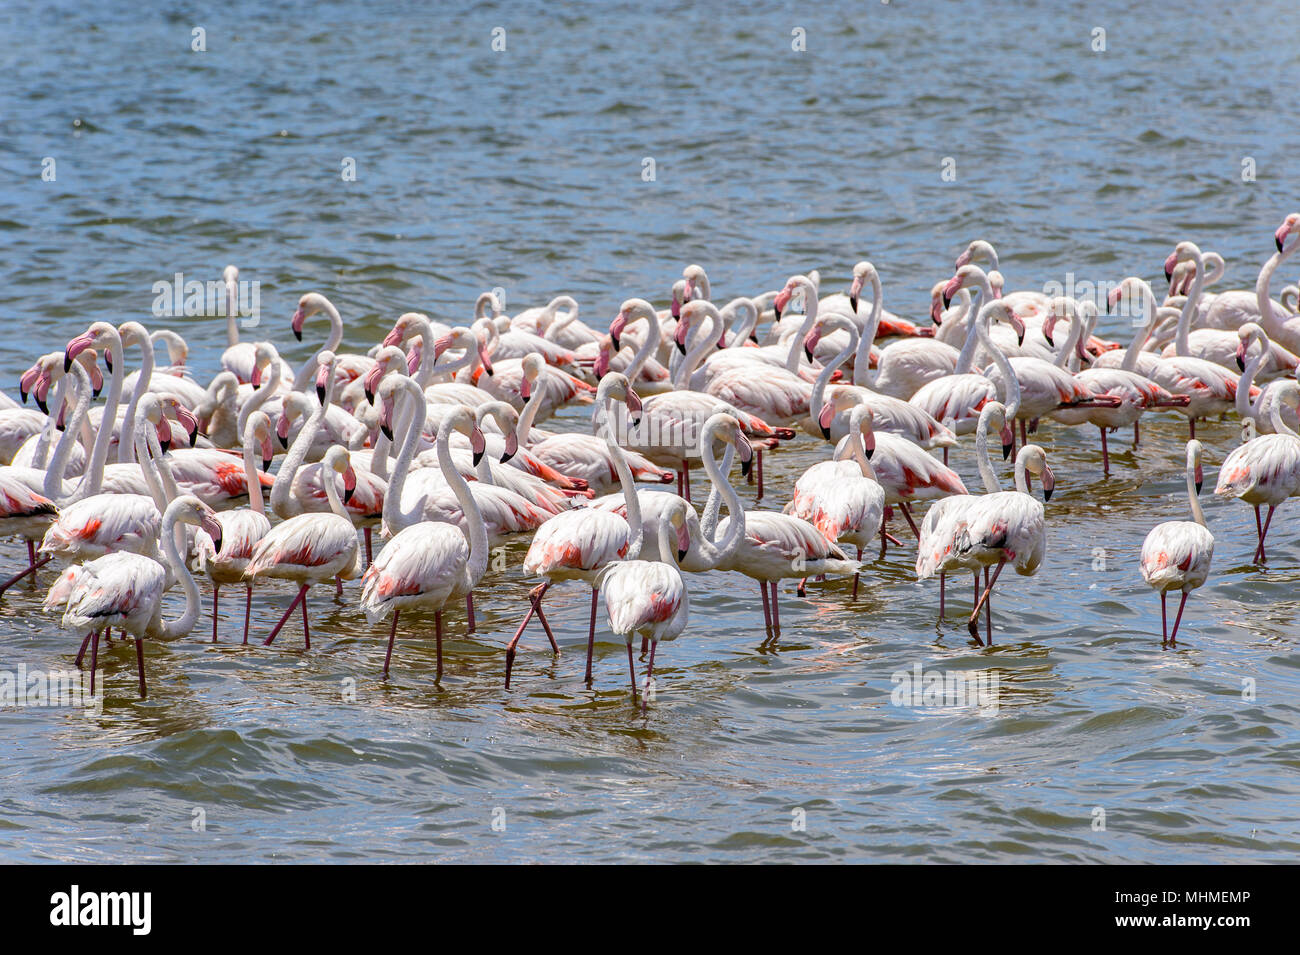 Flamingo in the ocean - Stock Image